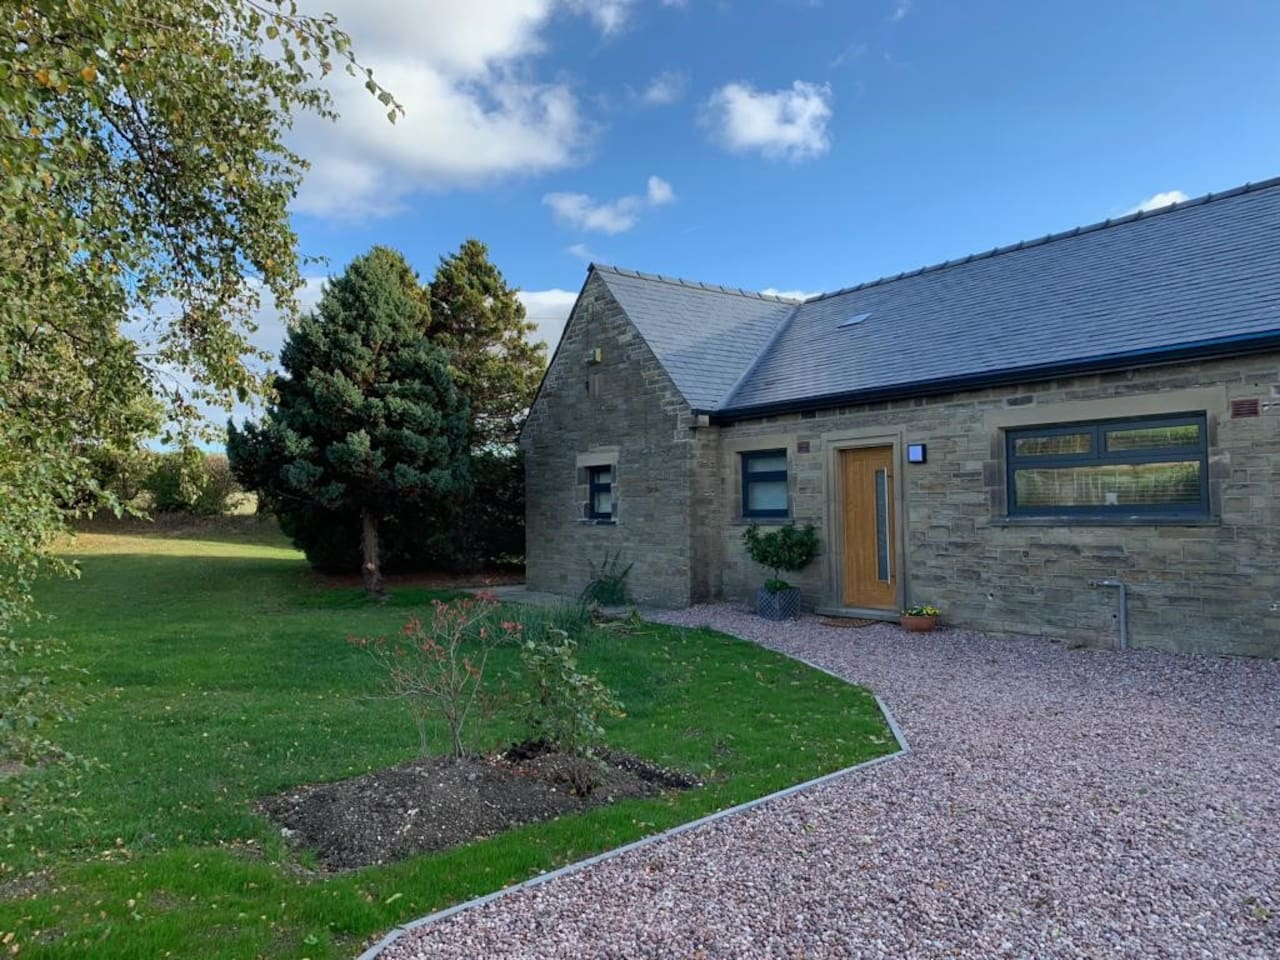 Beautiful newly refurbished  stone  cottage with panoramic views of the Pennine lowlands and moors,  on the Tour de Yorkshire and Le Grand depart routes yet only 10 mins from the M1 Jnc  36, three other rooms available in the same house.